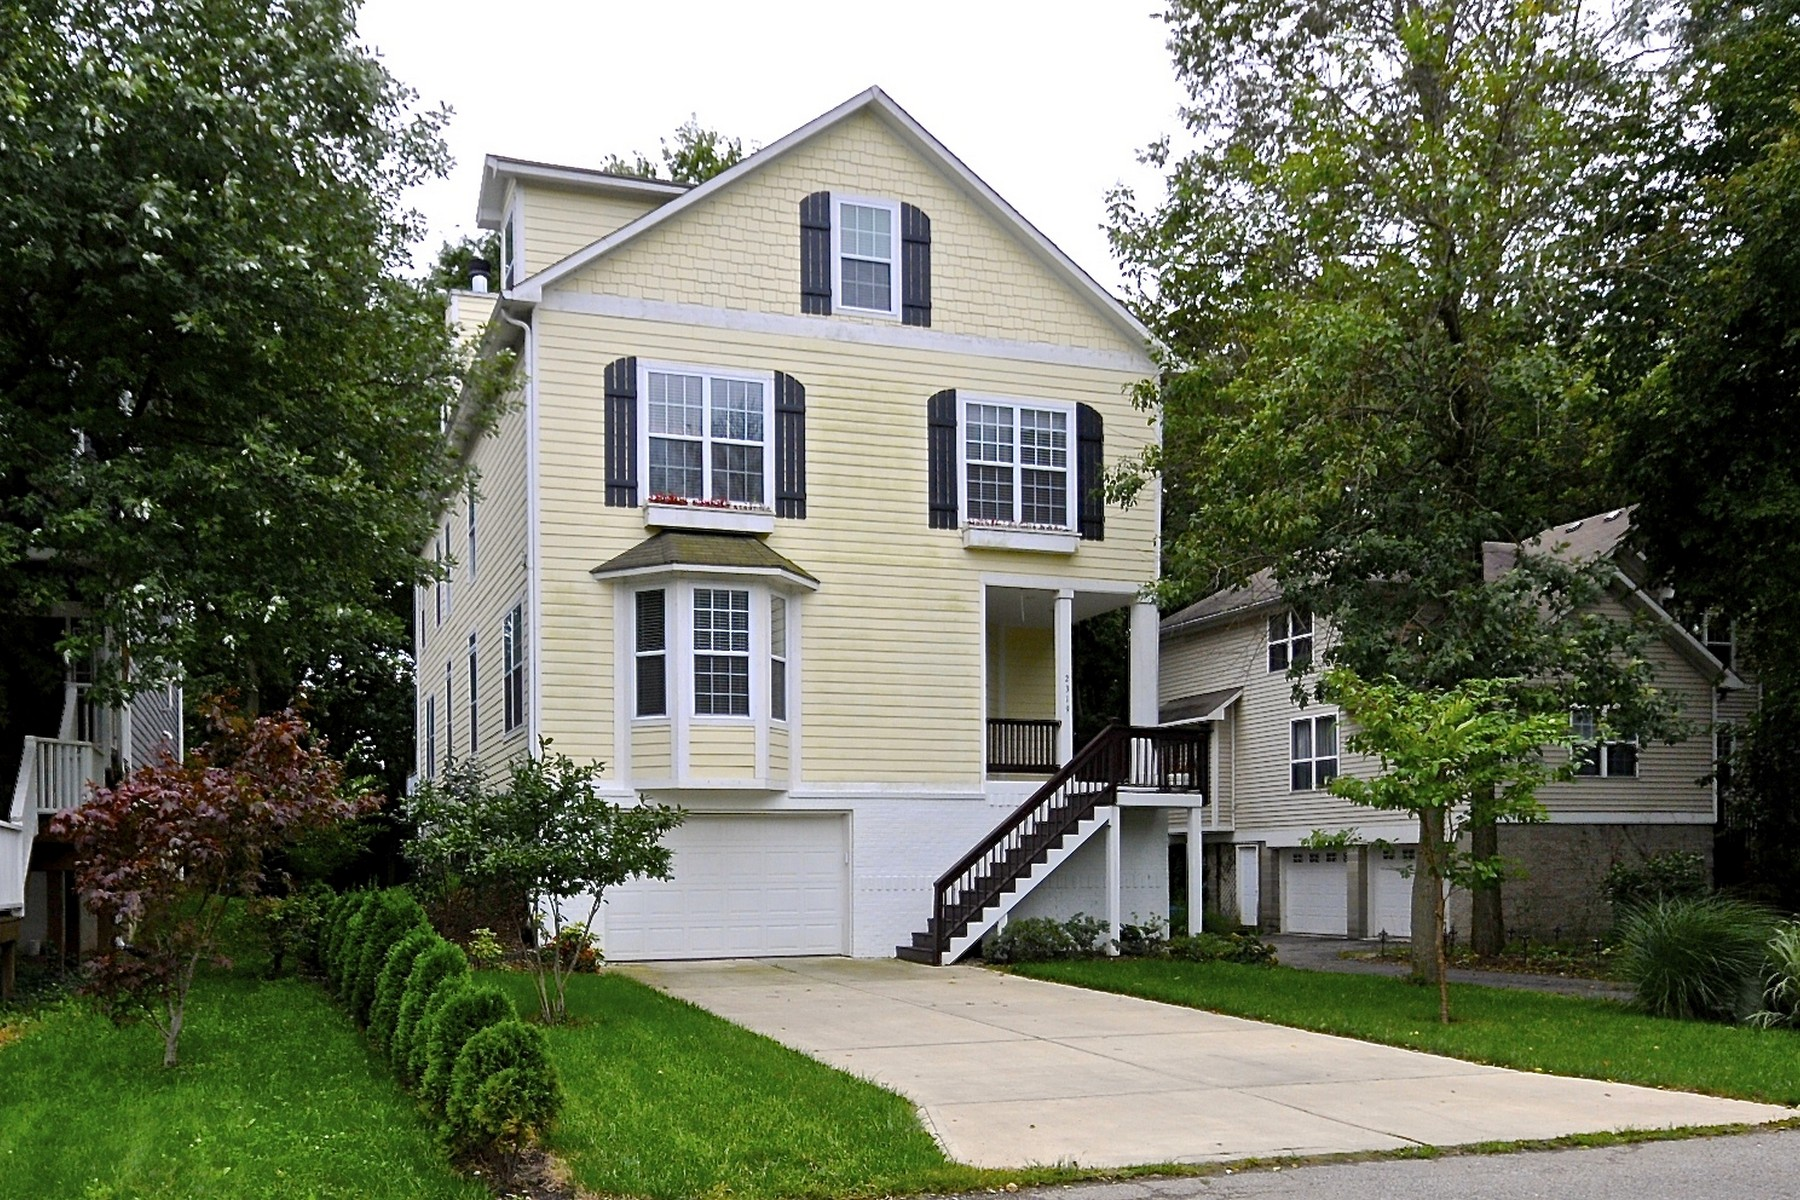 Single Family Home for Sale at Stunning Home in River Park 2319 Beach Avenue Indianapolis, Indiana 46240 United States